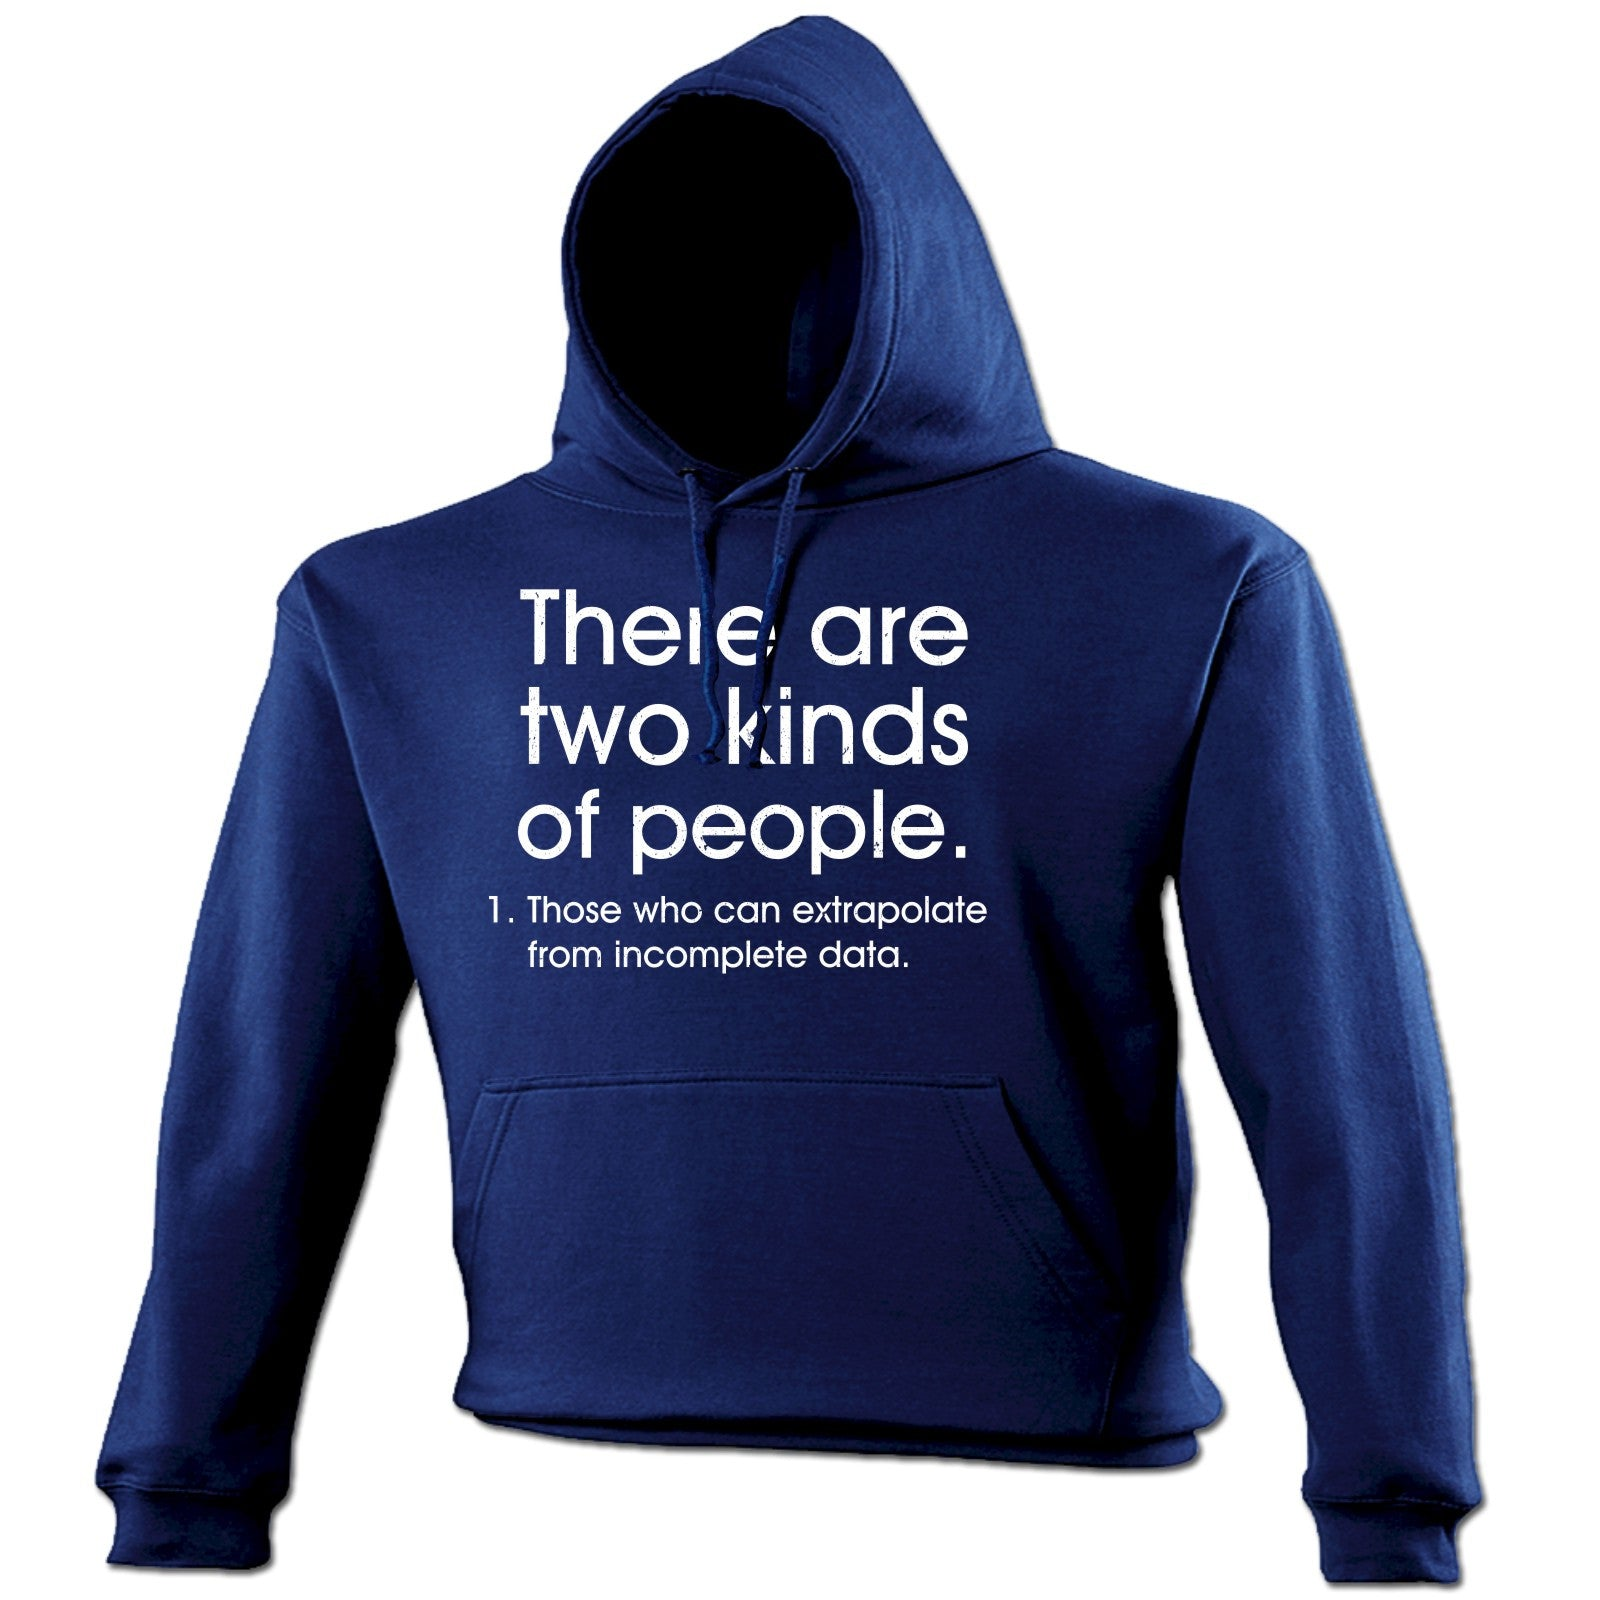 Types of hoodies